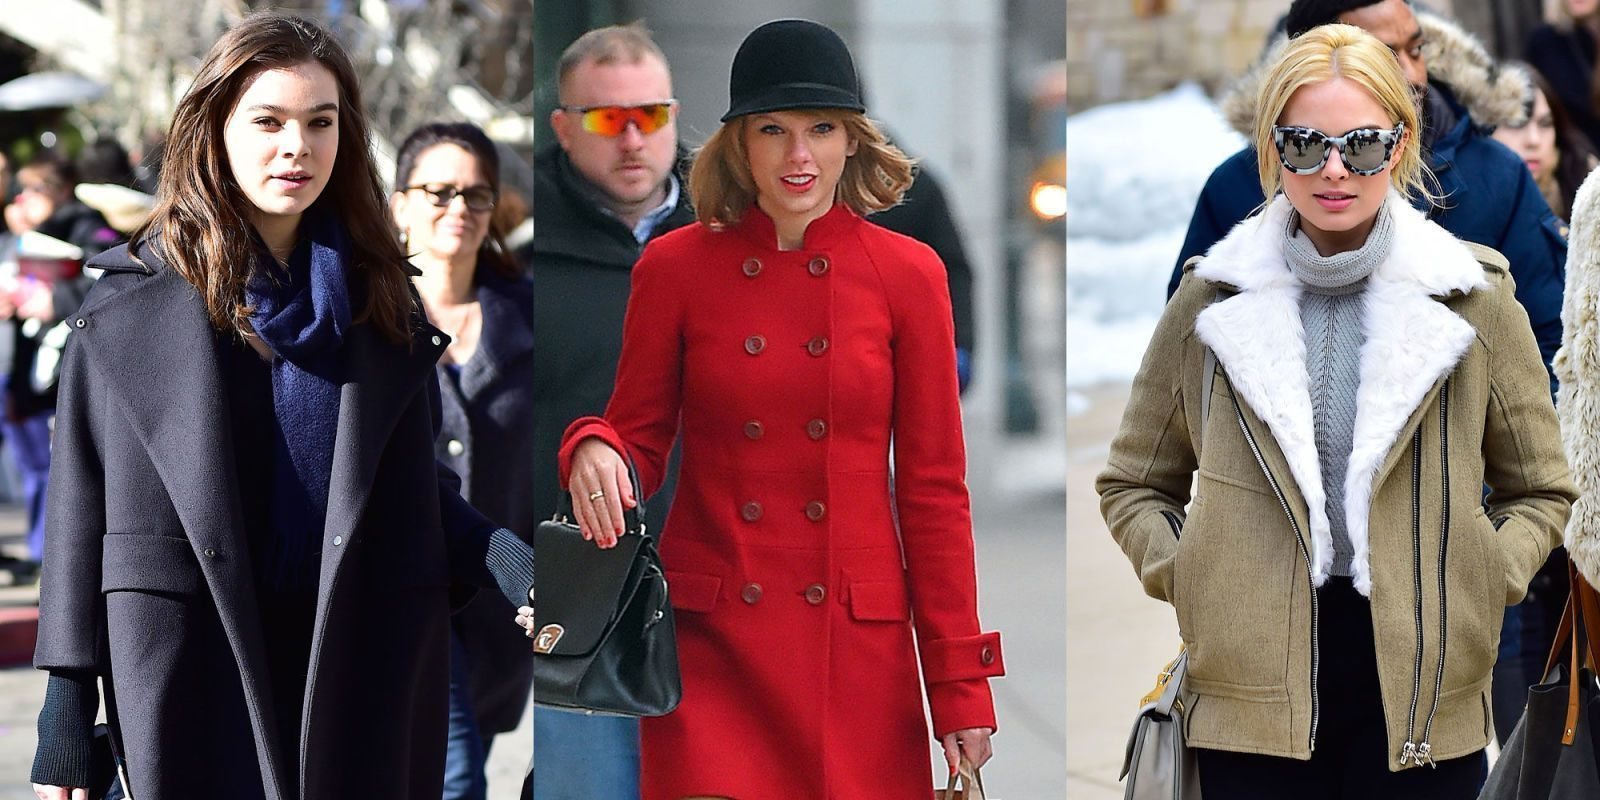 The Top Celebrity Fashion Trends this Winter Season